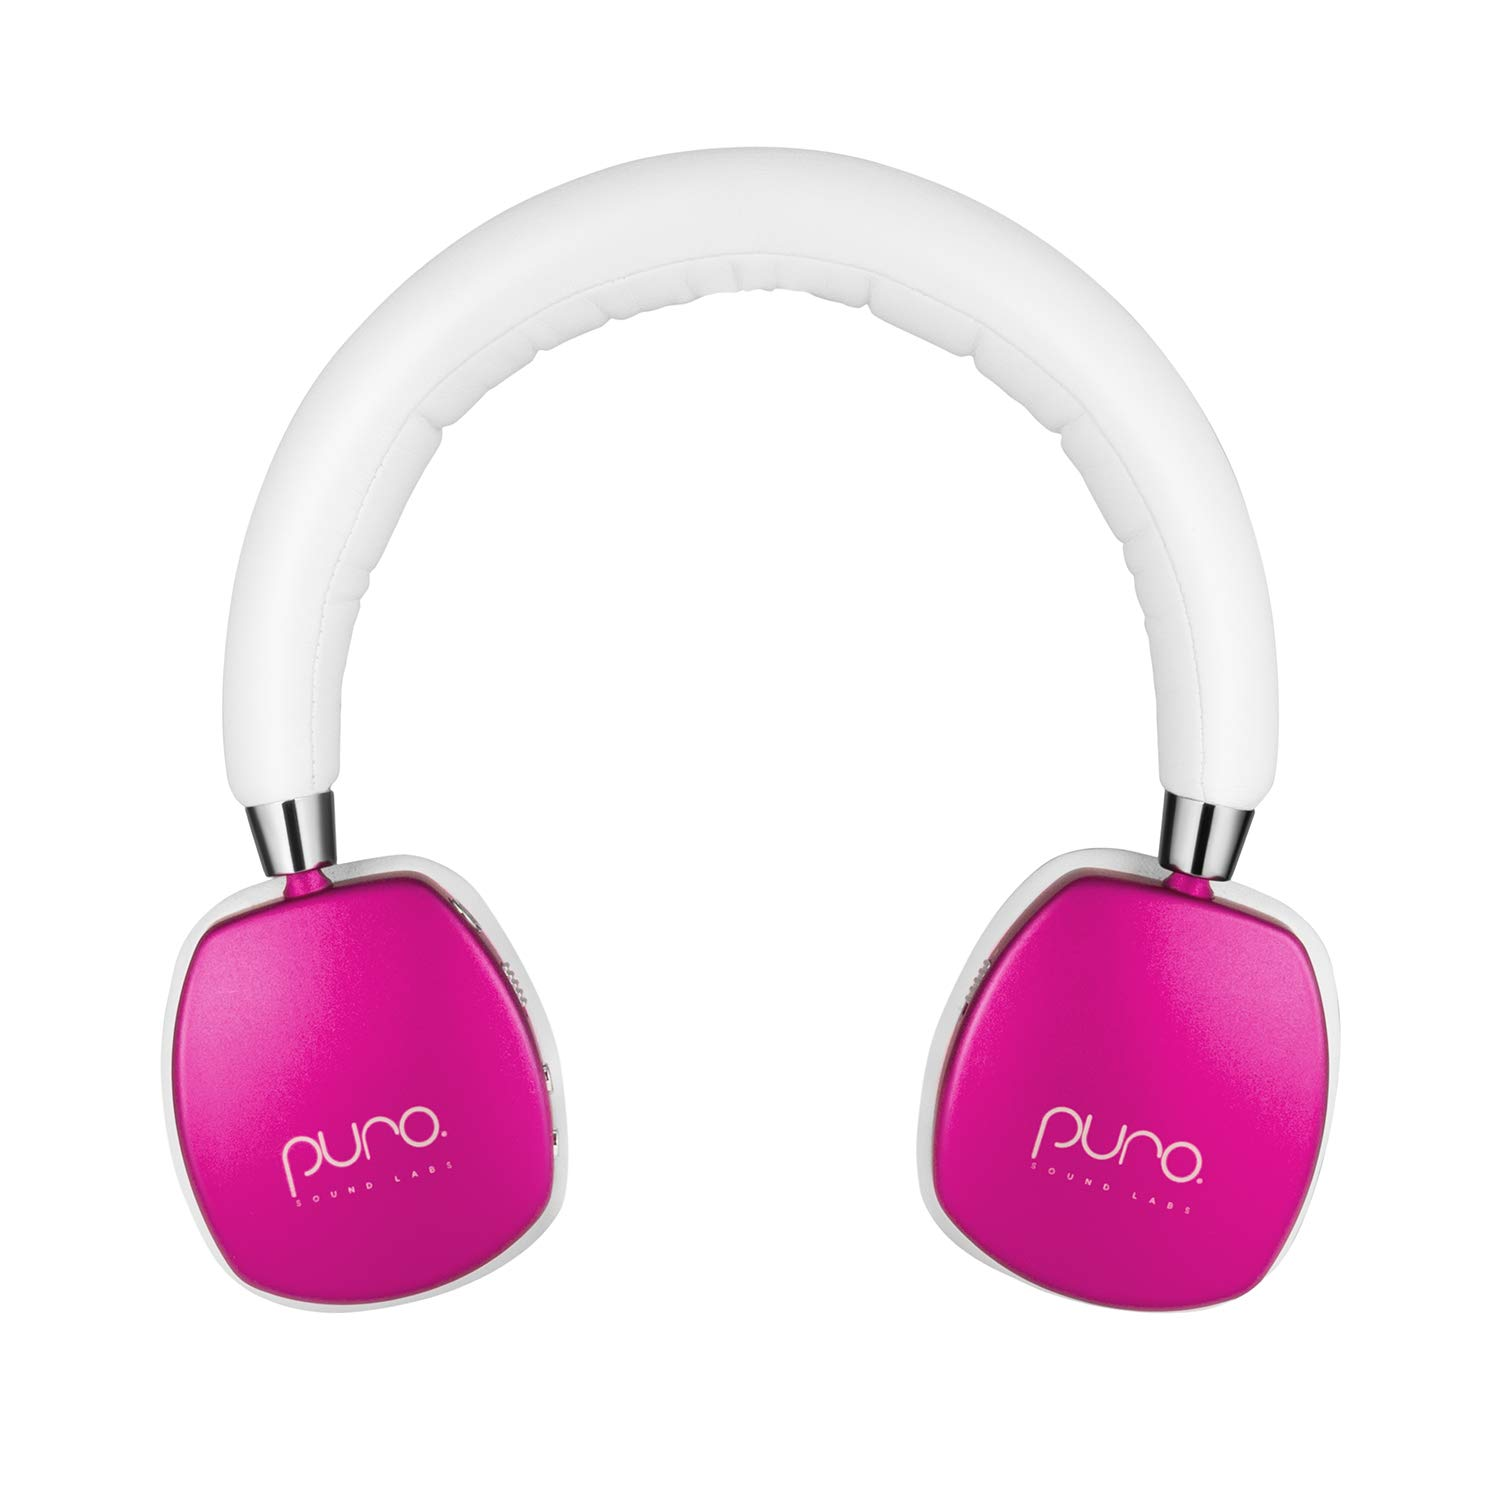 Puro Sound Labs PuroQuiet Kids Volume-Limiting Noise-Cancelling On-Ear Wireless Headphones Pink